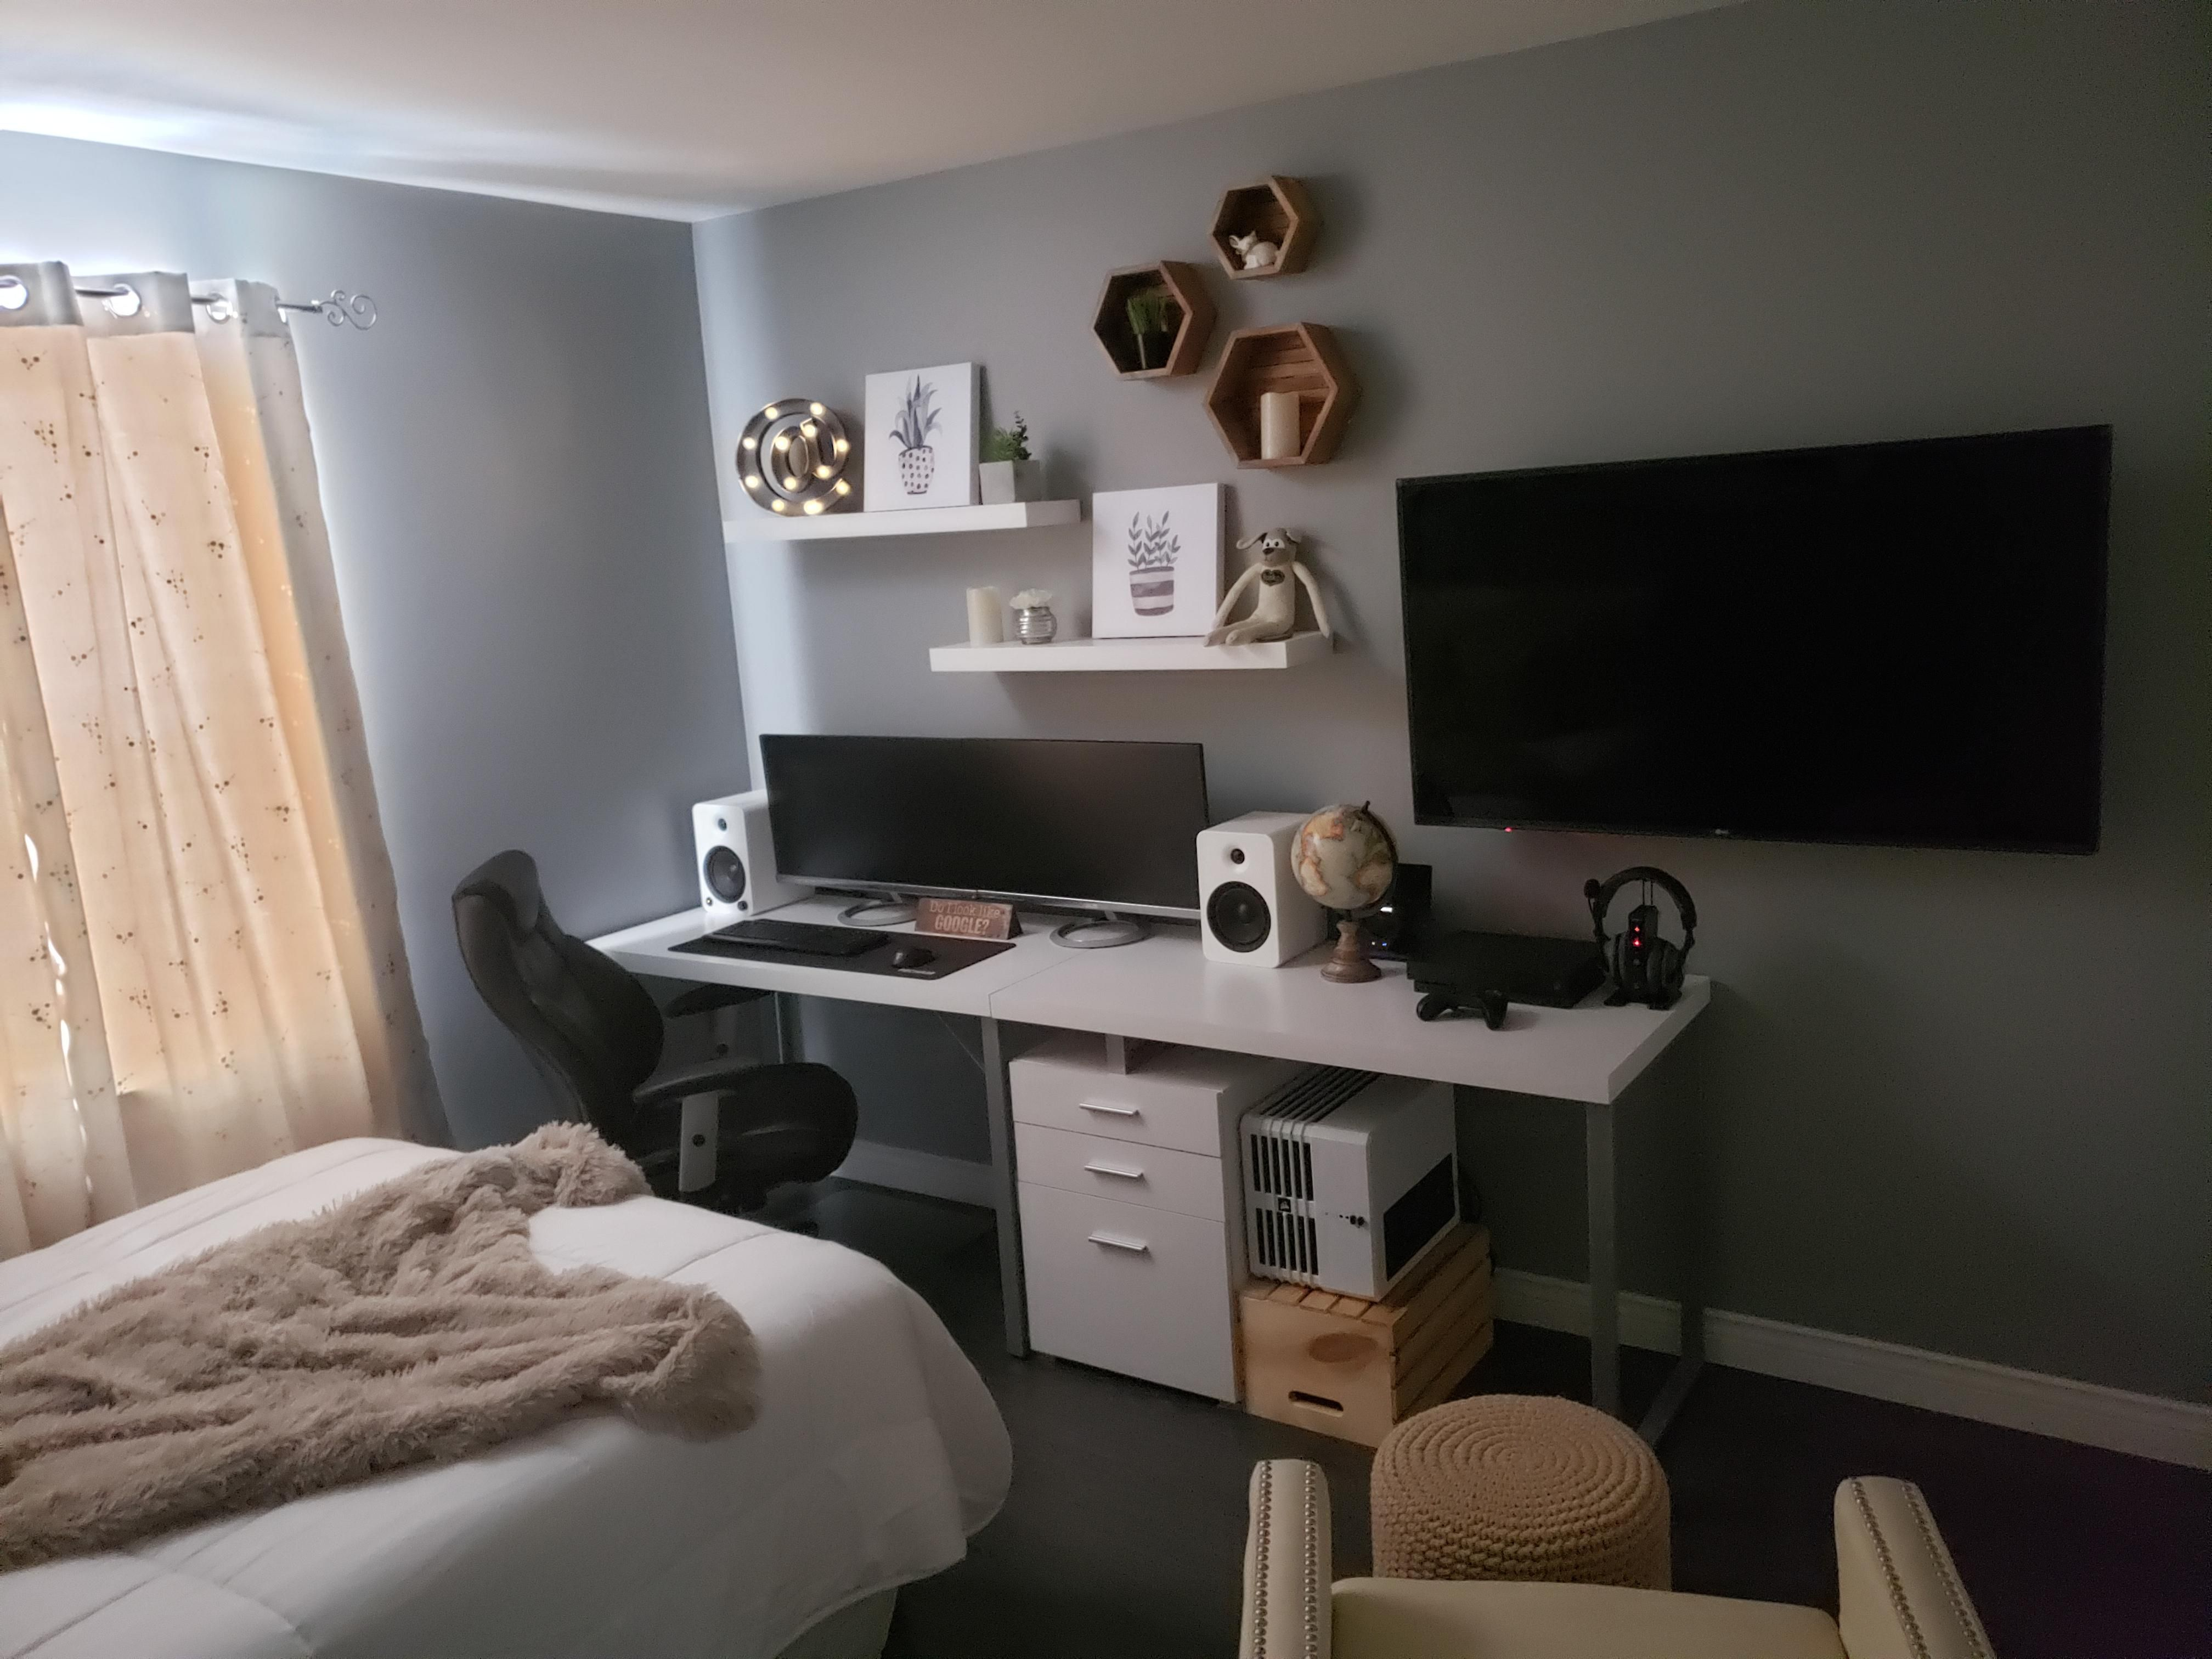 Spare Bedroom Office Console Gaming Station Guest Bedroom Office Guest Bedroom Home Office Bedroom Office Combo Small home office spare bedroom ideas